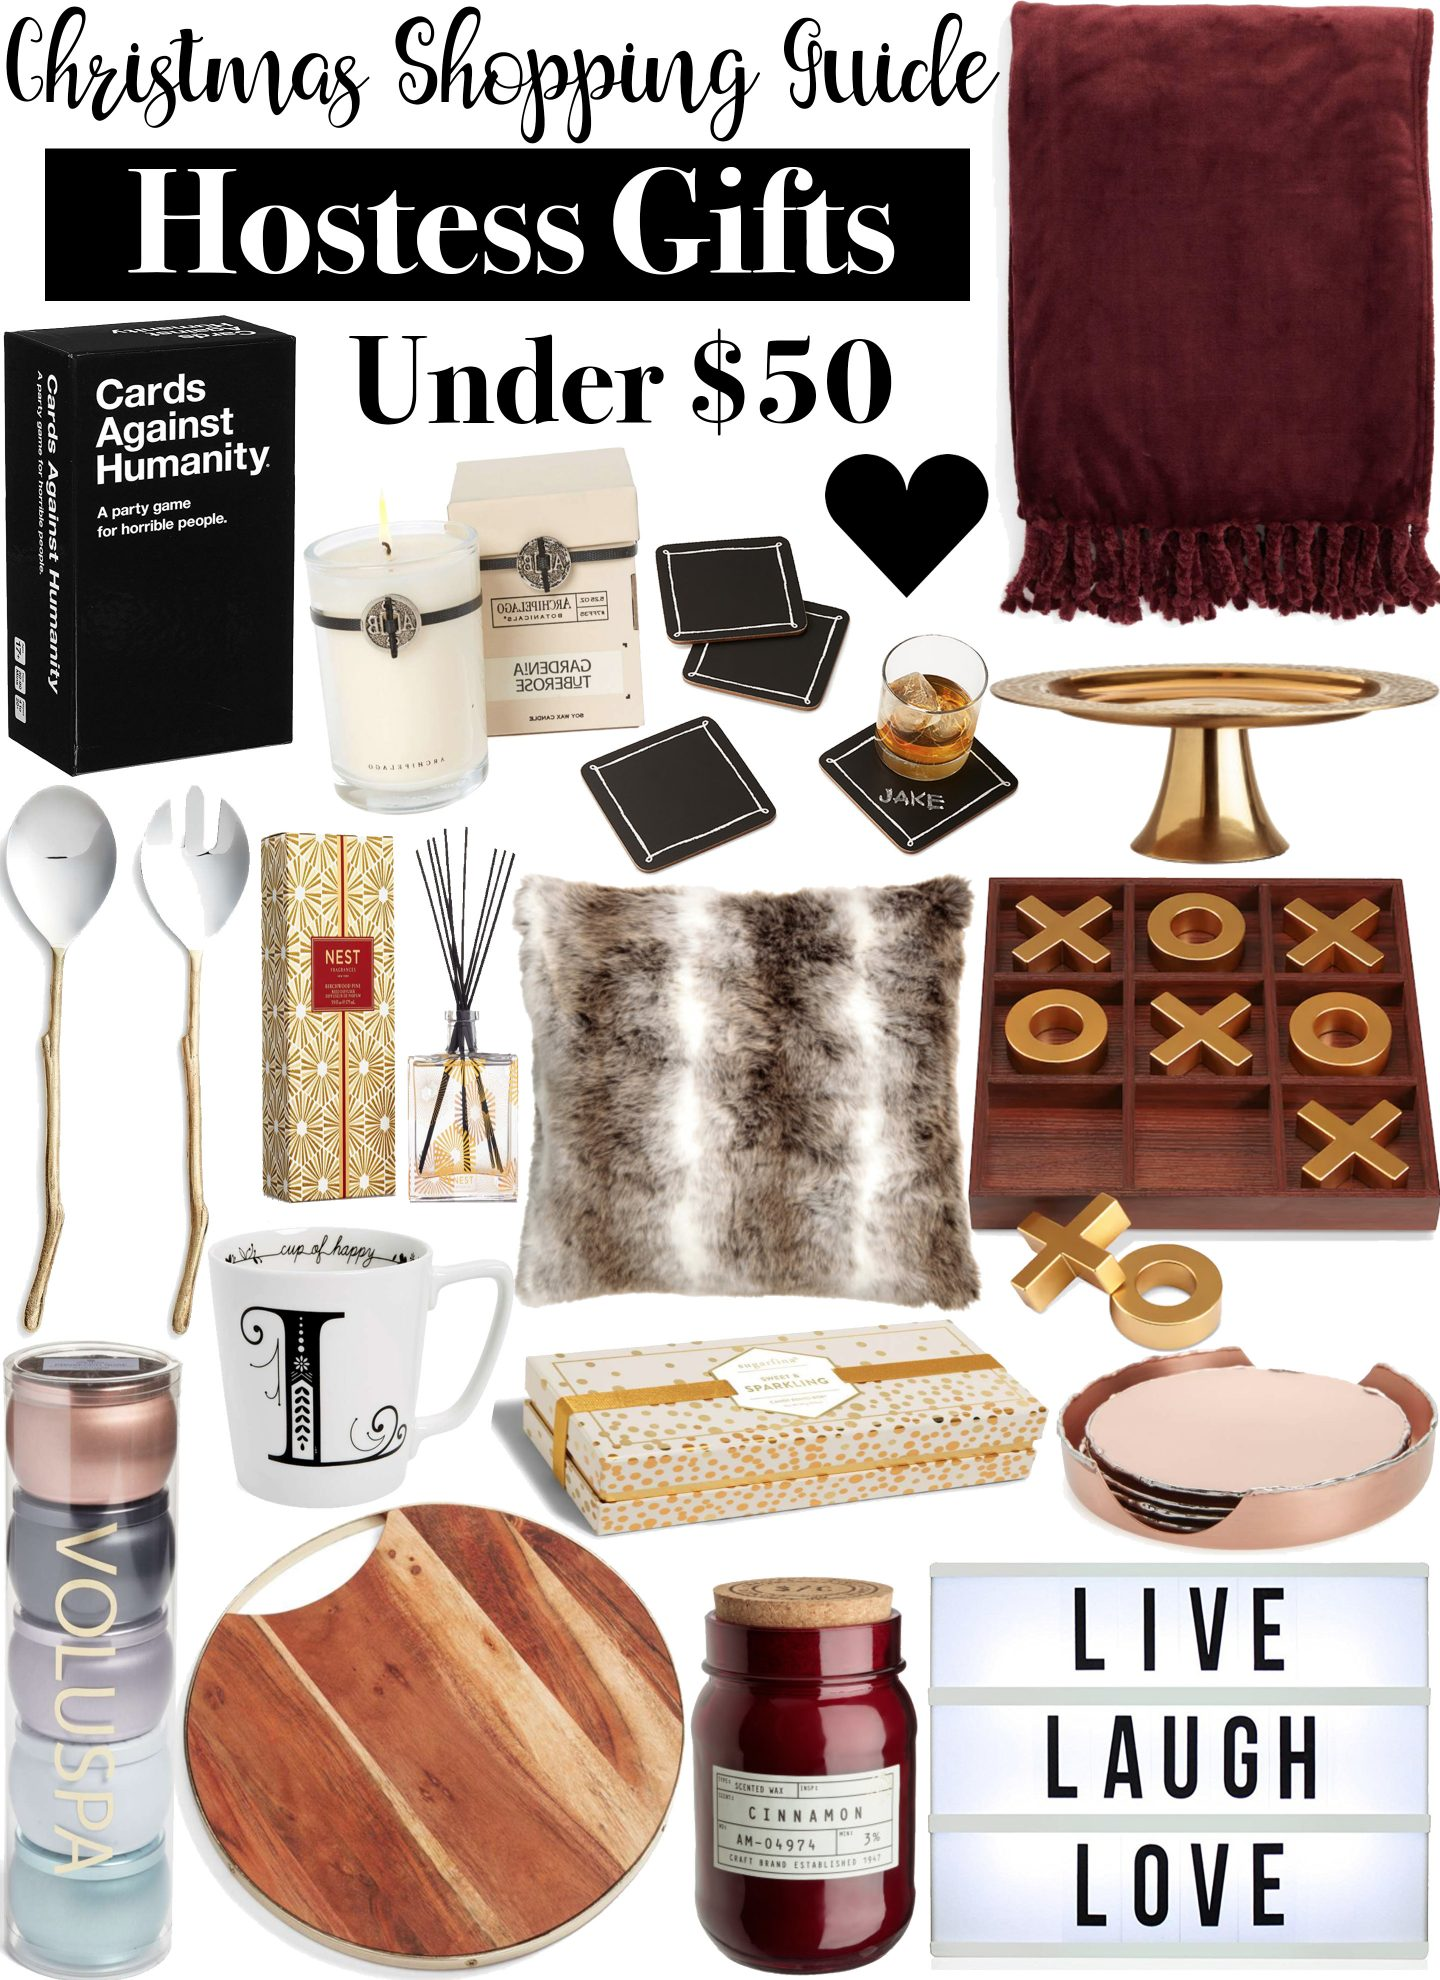 Christmas Shopping Guide: Hostess Gifts Under $50 by Washington DC style blogger Styled Blonde